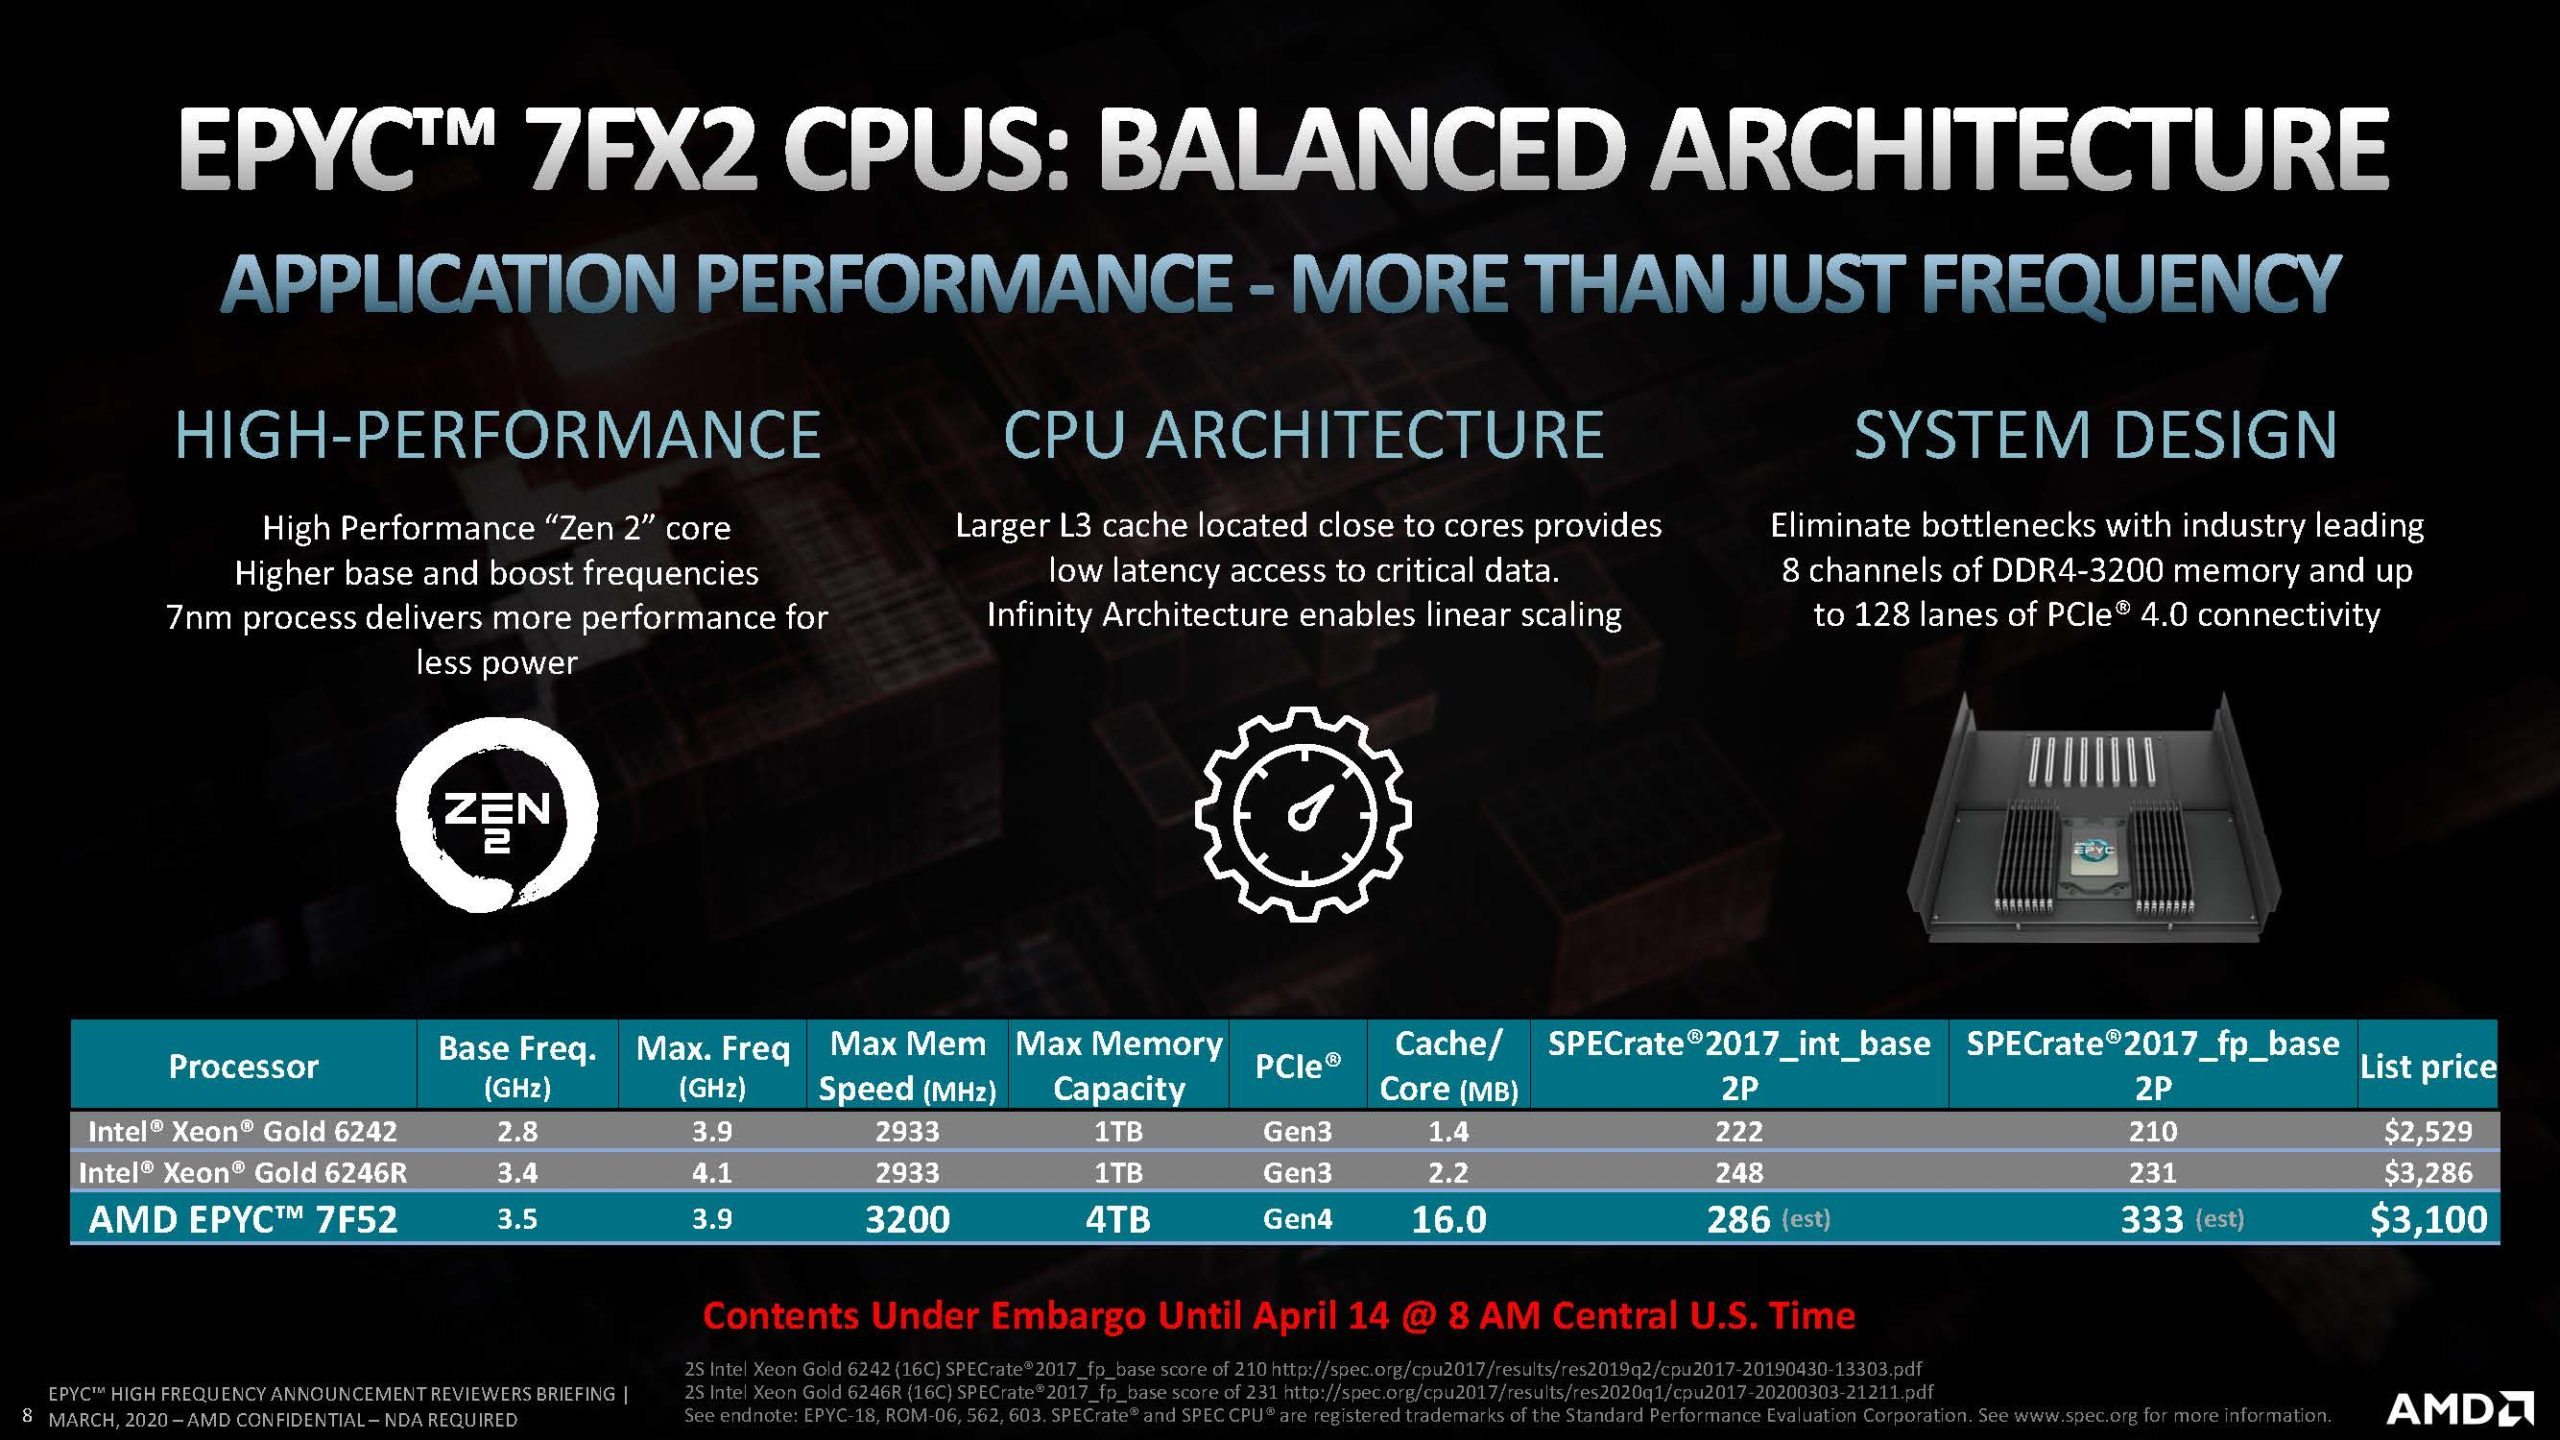 AMD EPYC 7Fx2 Launch Slides Competitive Analysis For EPYC 7F52 To Intel Xeon